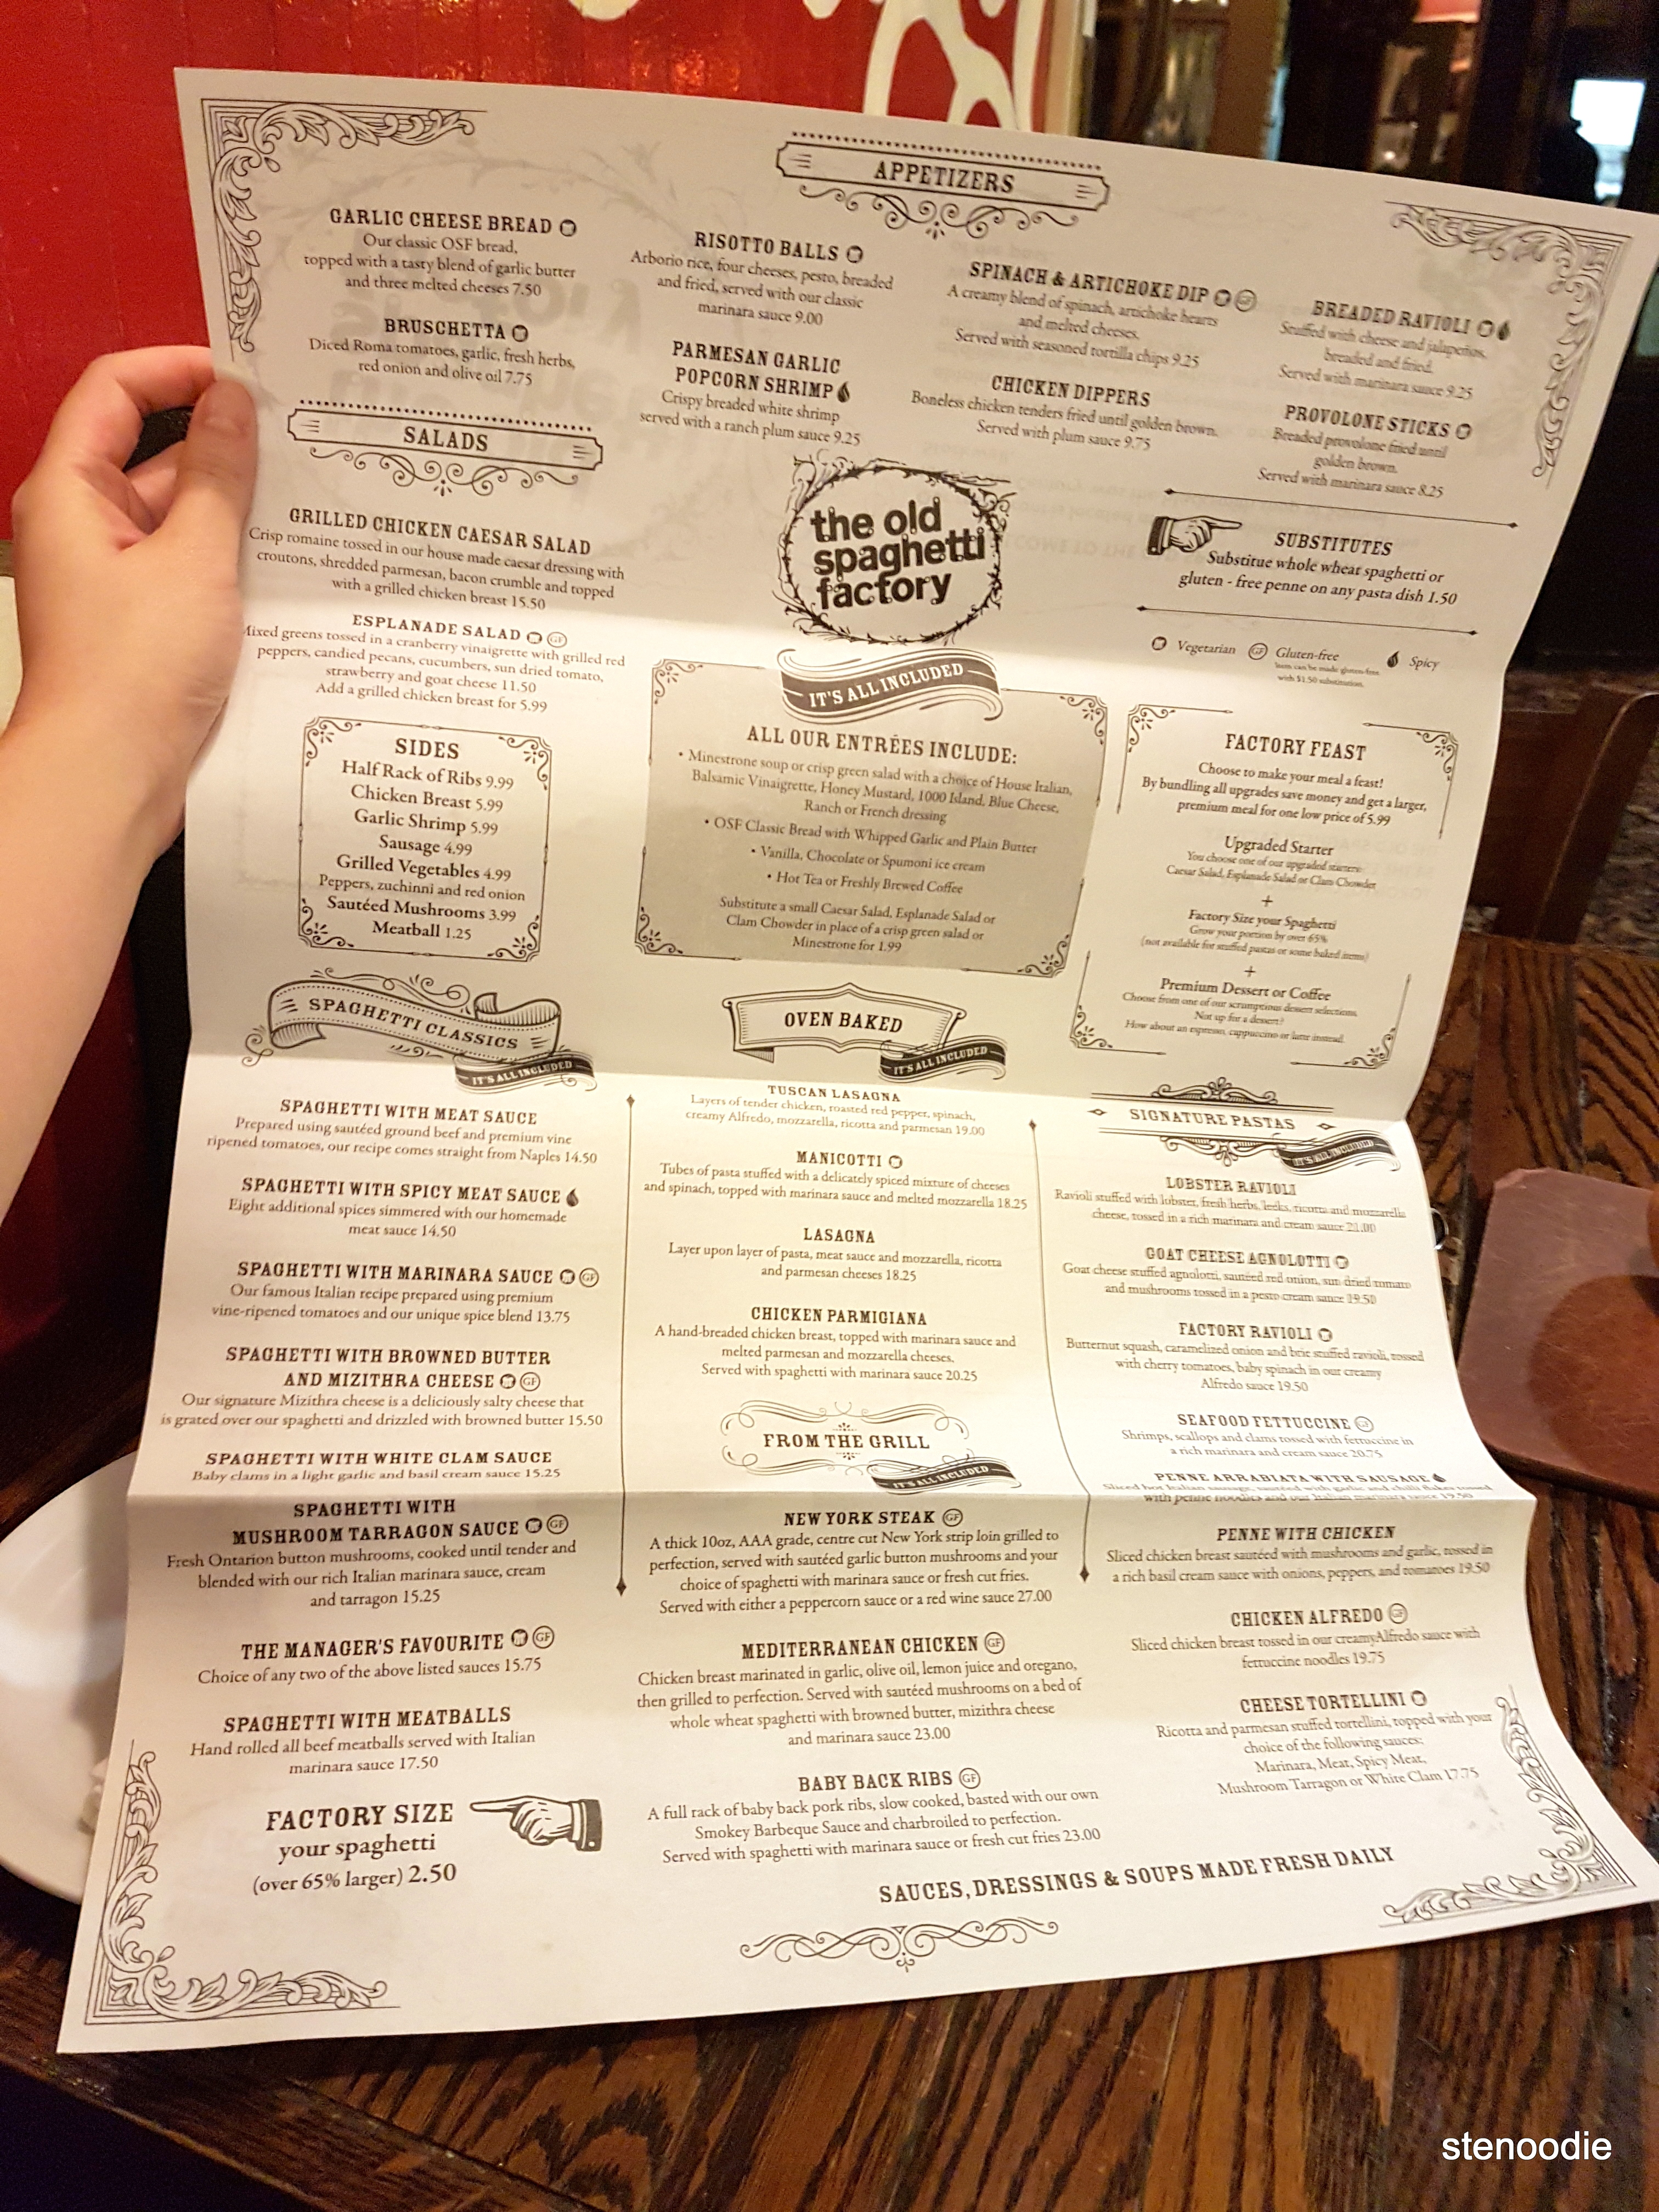 The Old Spaghetti Factory dinner menu